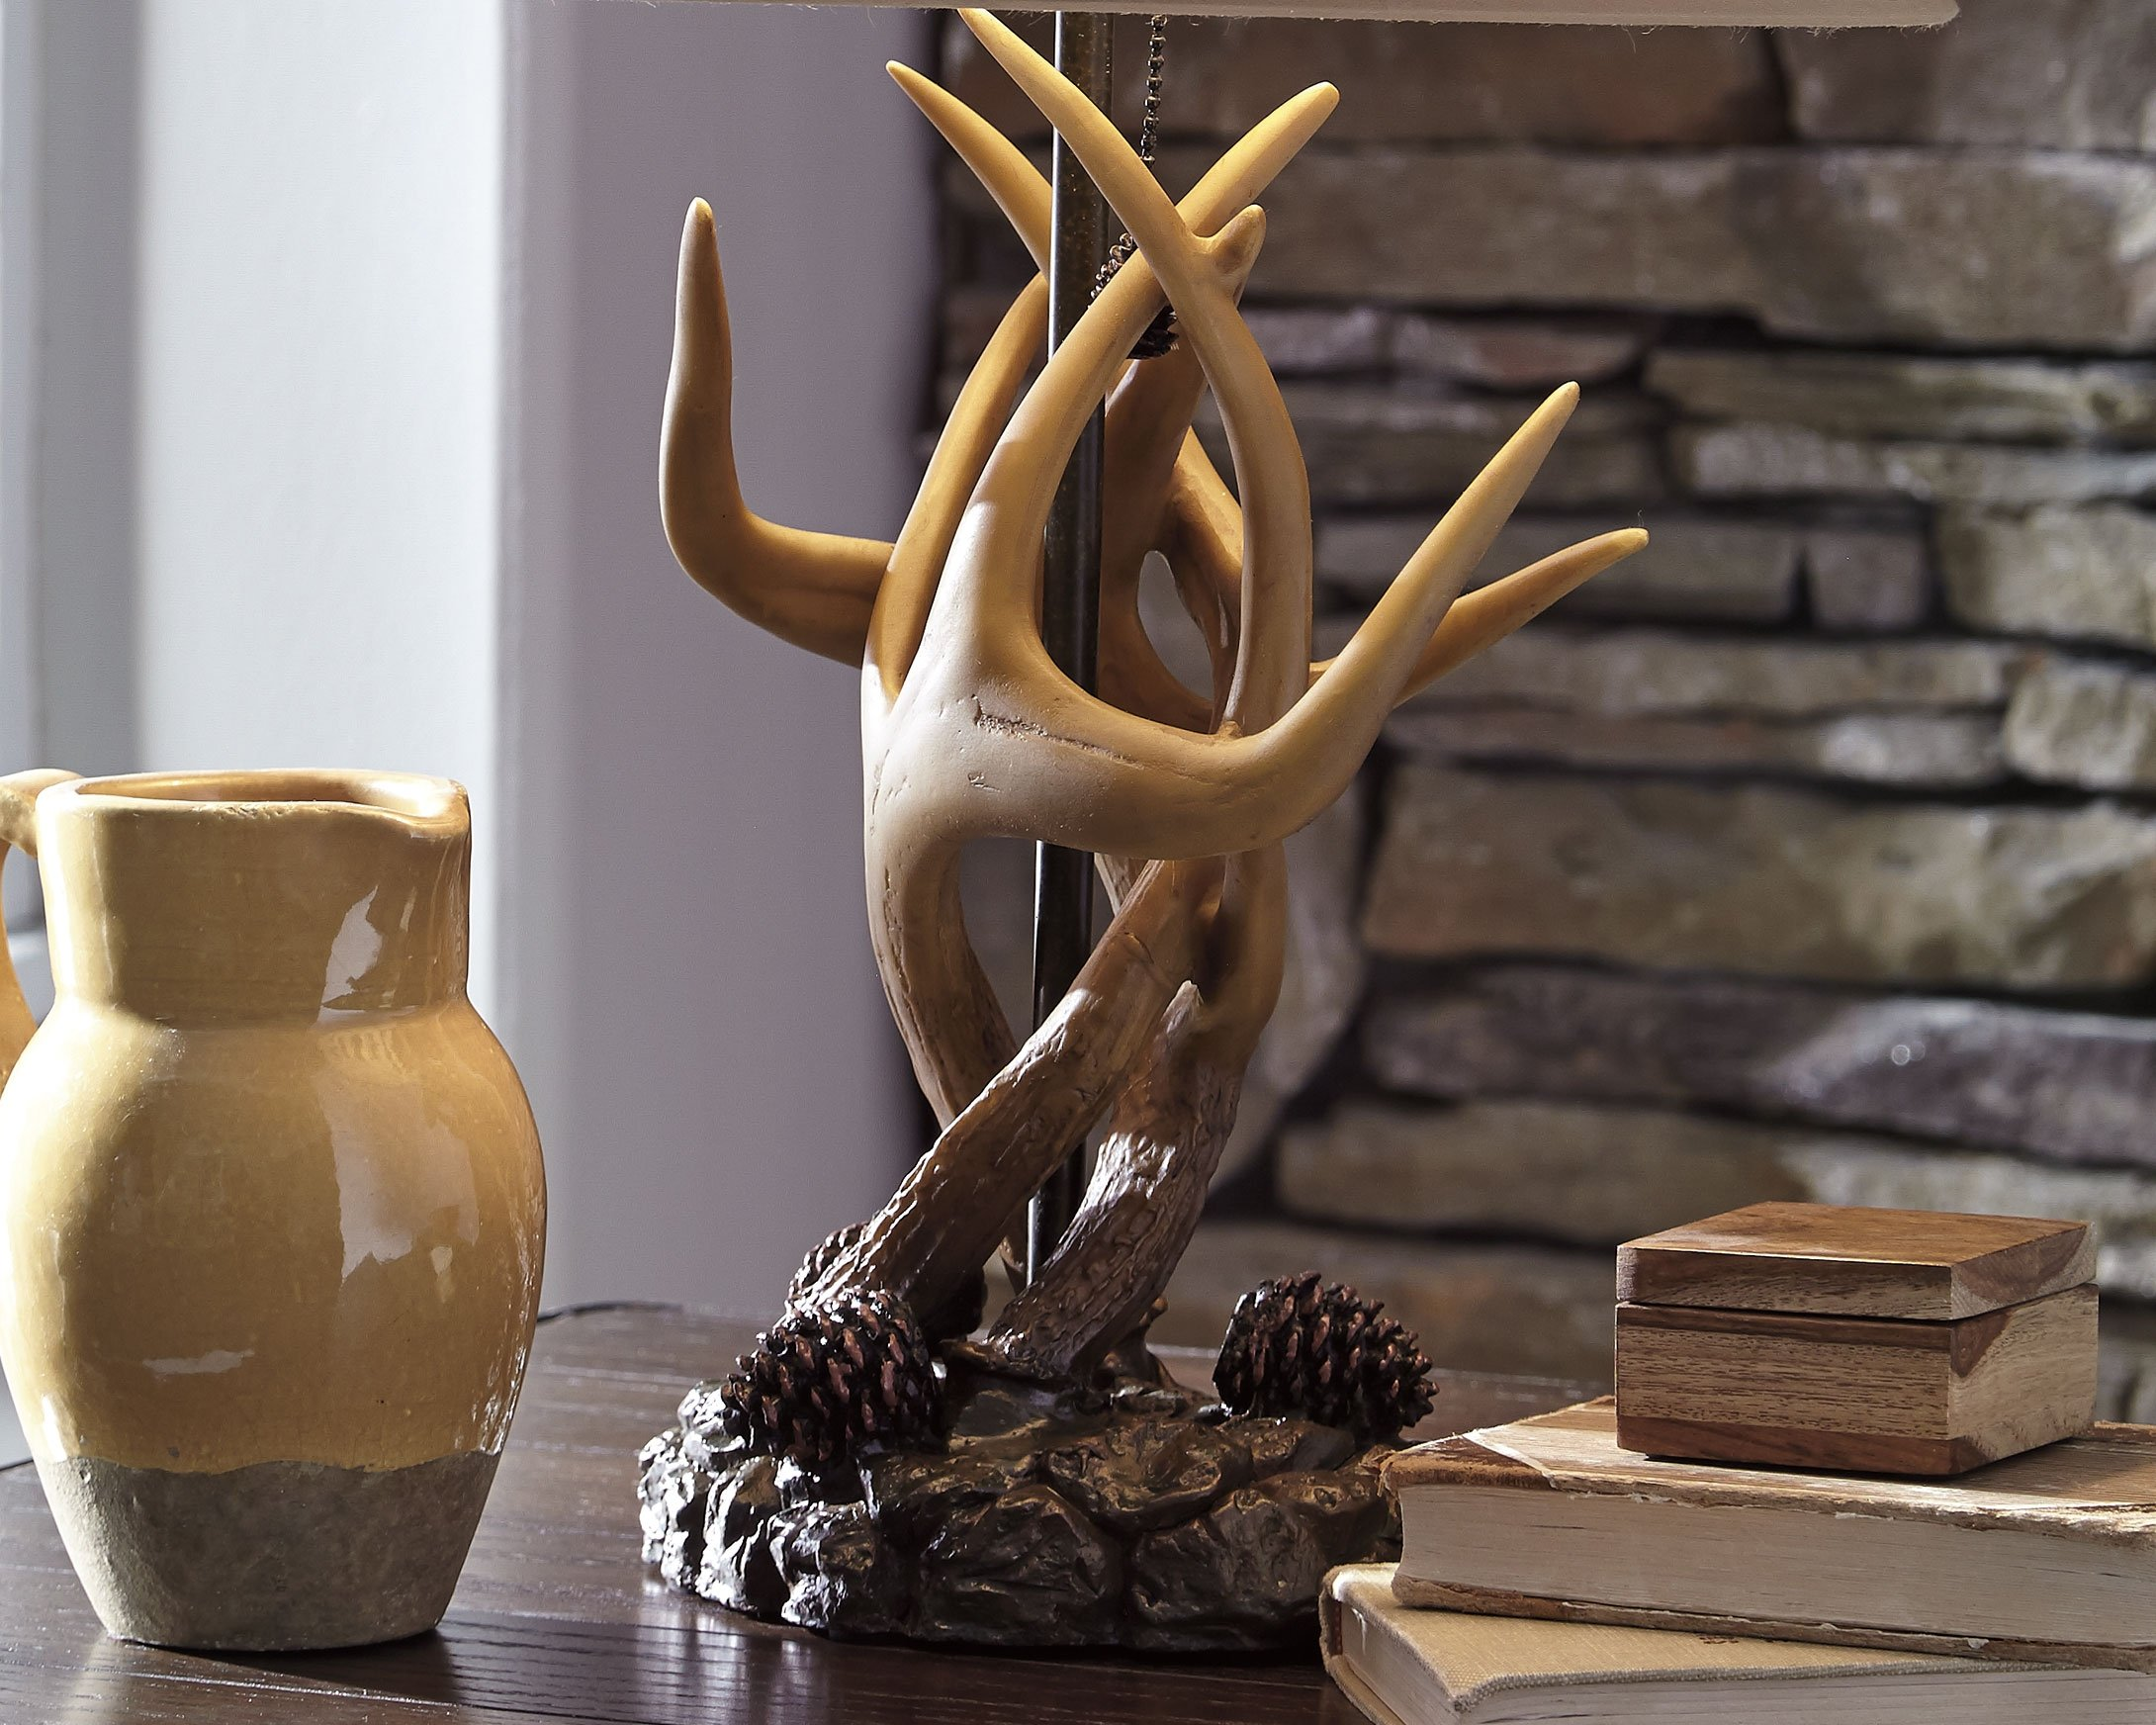 Ashley Furniture Signature Design - Derek Antler Table Lamps - Mountain Style Shades - Set of 2 - Natural Finish by Signature Design by Ashley (Image #3)